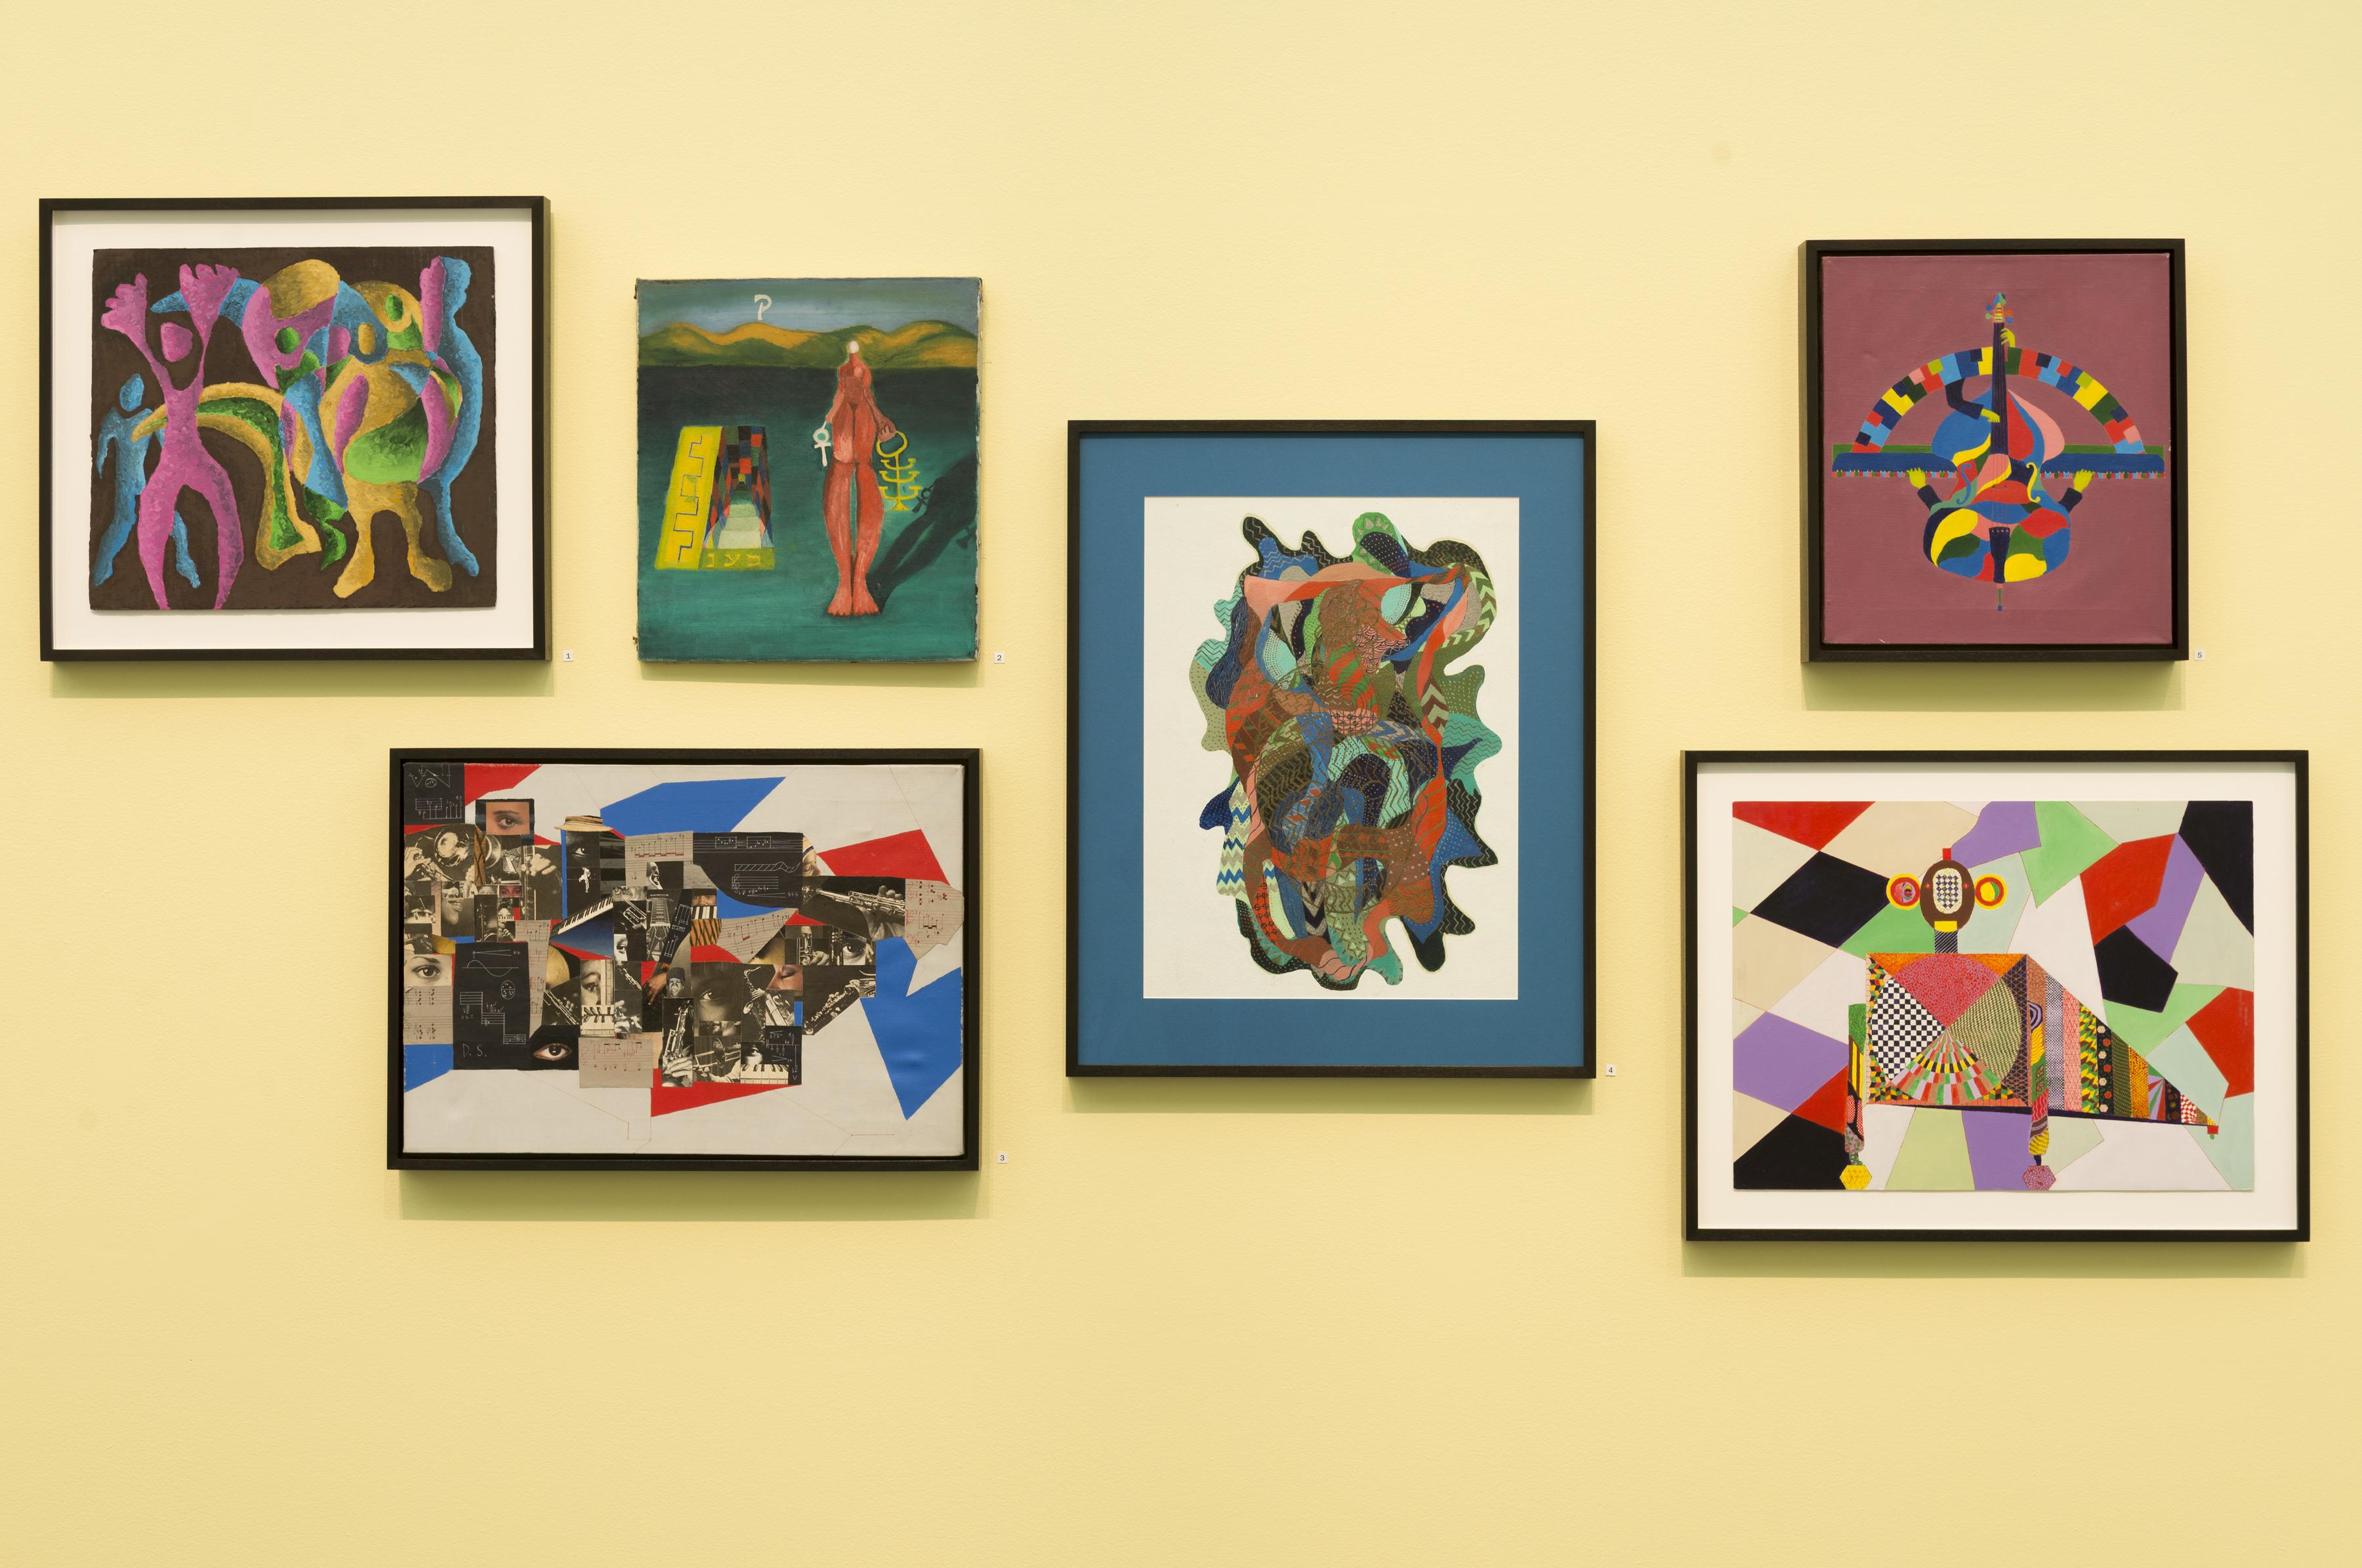 Six colorful paintings featuring geometric forms in bright colors are hung in a cluster on a yellow wall.